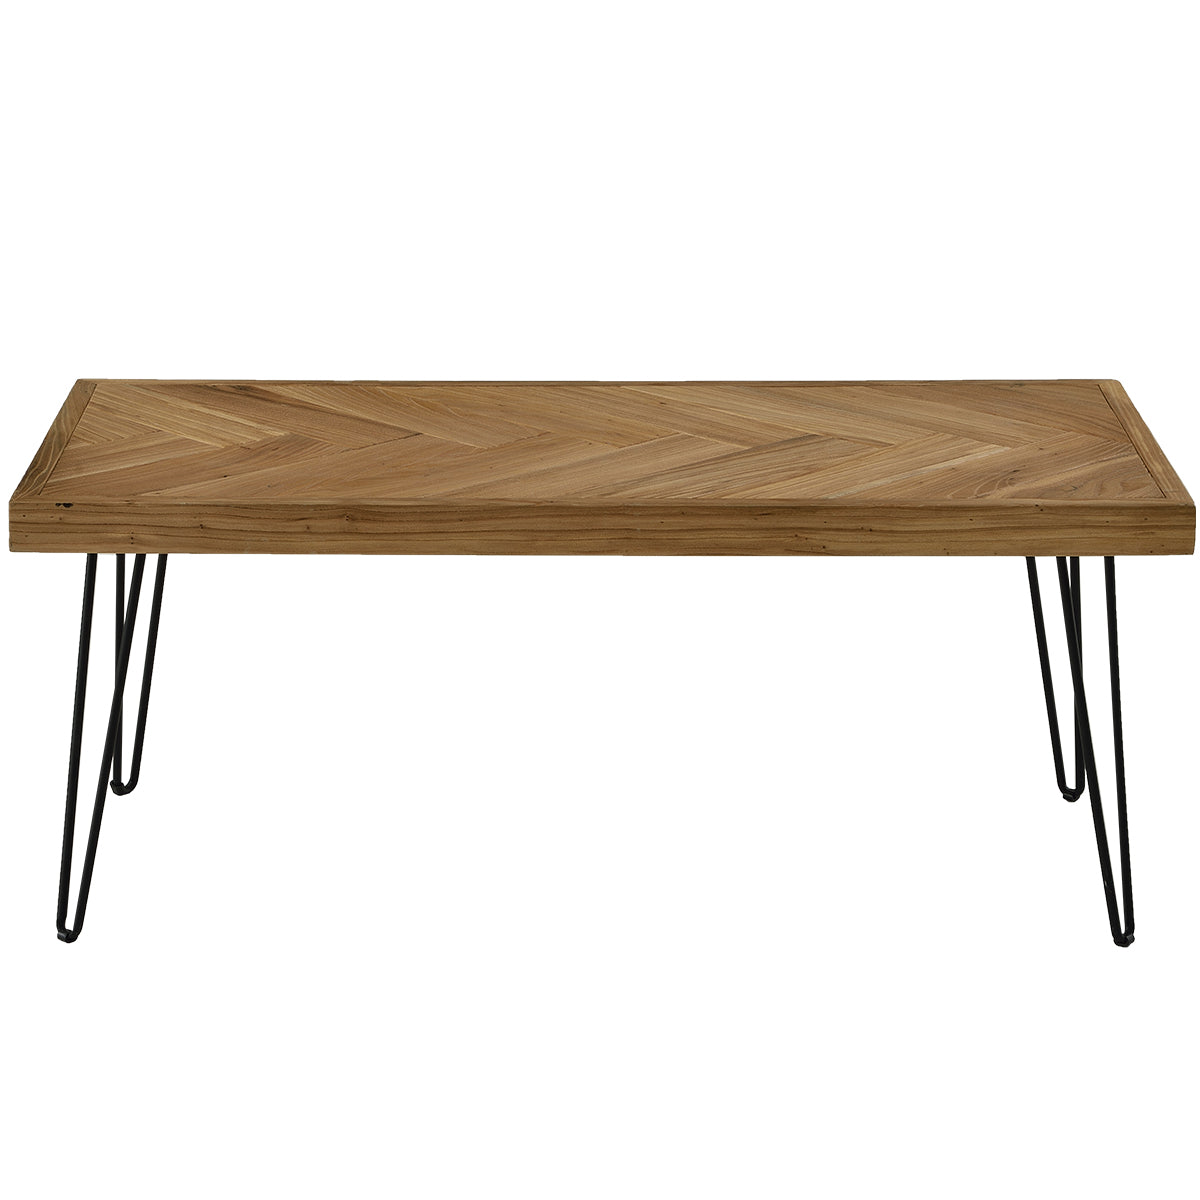 Sienna Coffee Table w/Chevron Pattern & Metal Hairpin Legs Glossy Finished Wood BH190111